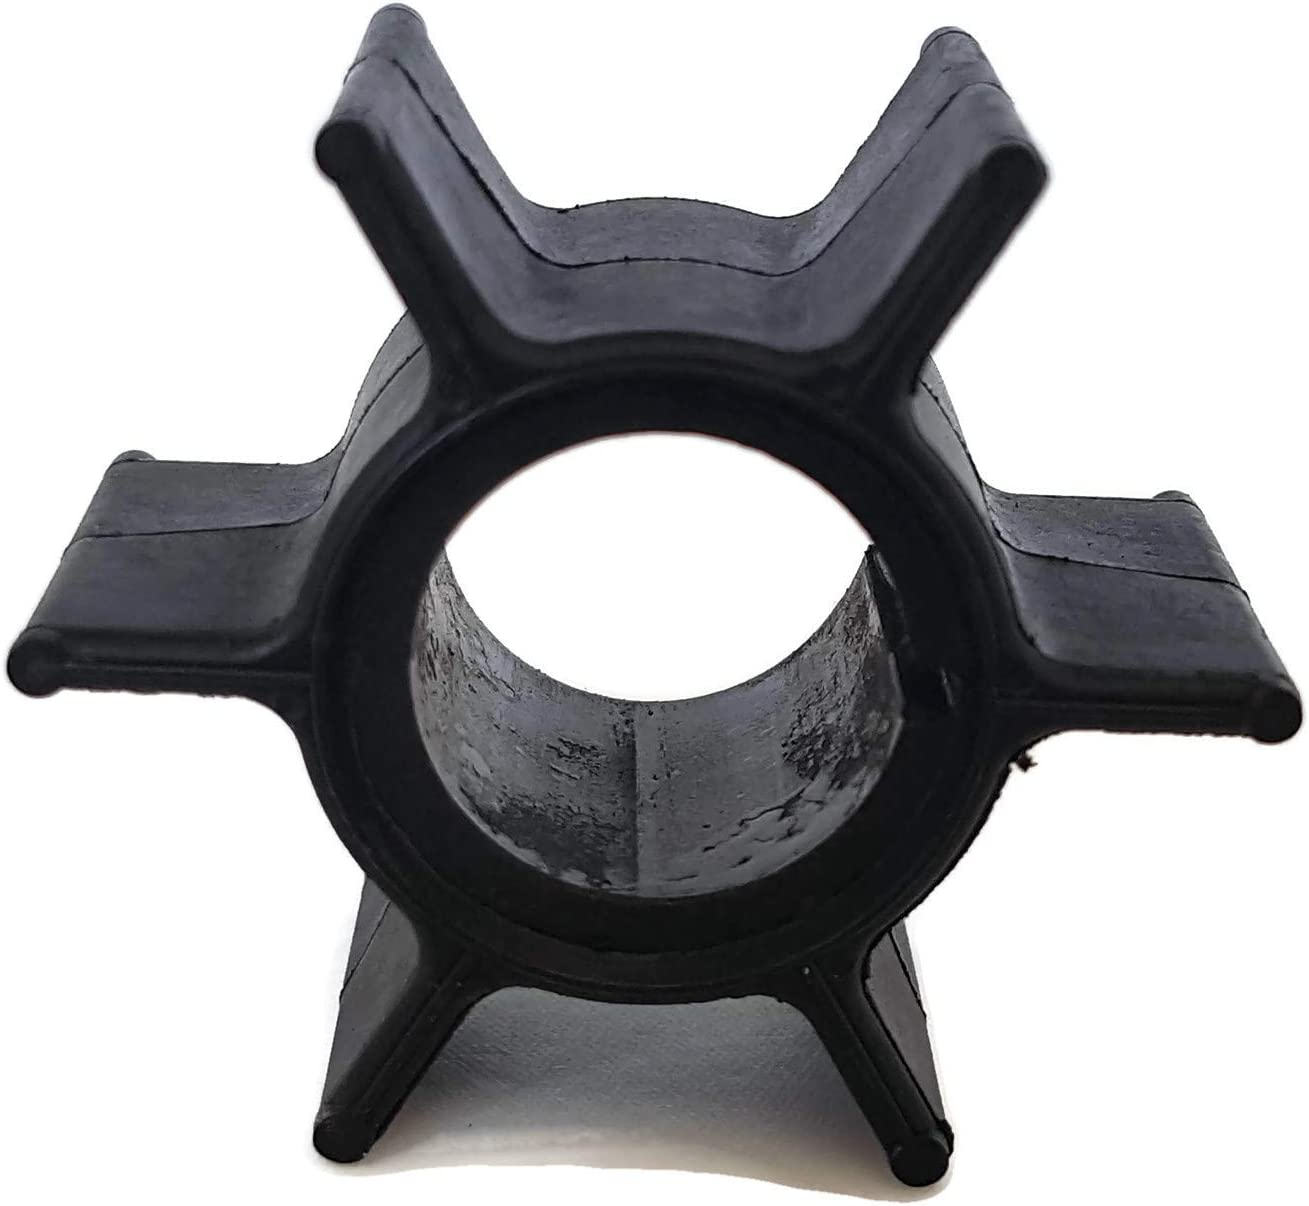 Yamadura Boat Motor Water Pump Impeller 345-65021-0 47-16154-1 345-65021-0M Outboard Motor for Tohatsu Nissan Outboard 25HP 30HP 35HP 40HP Sierra Marine 18-8923 Boat Engine